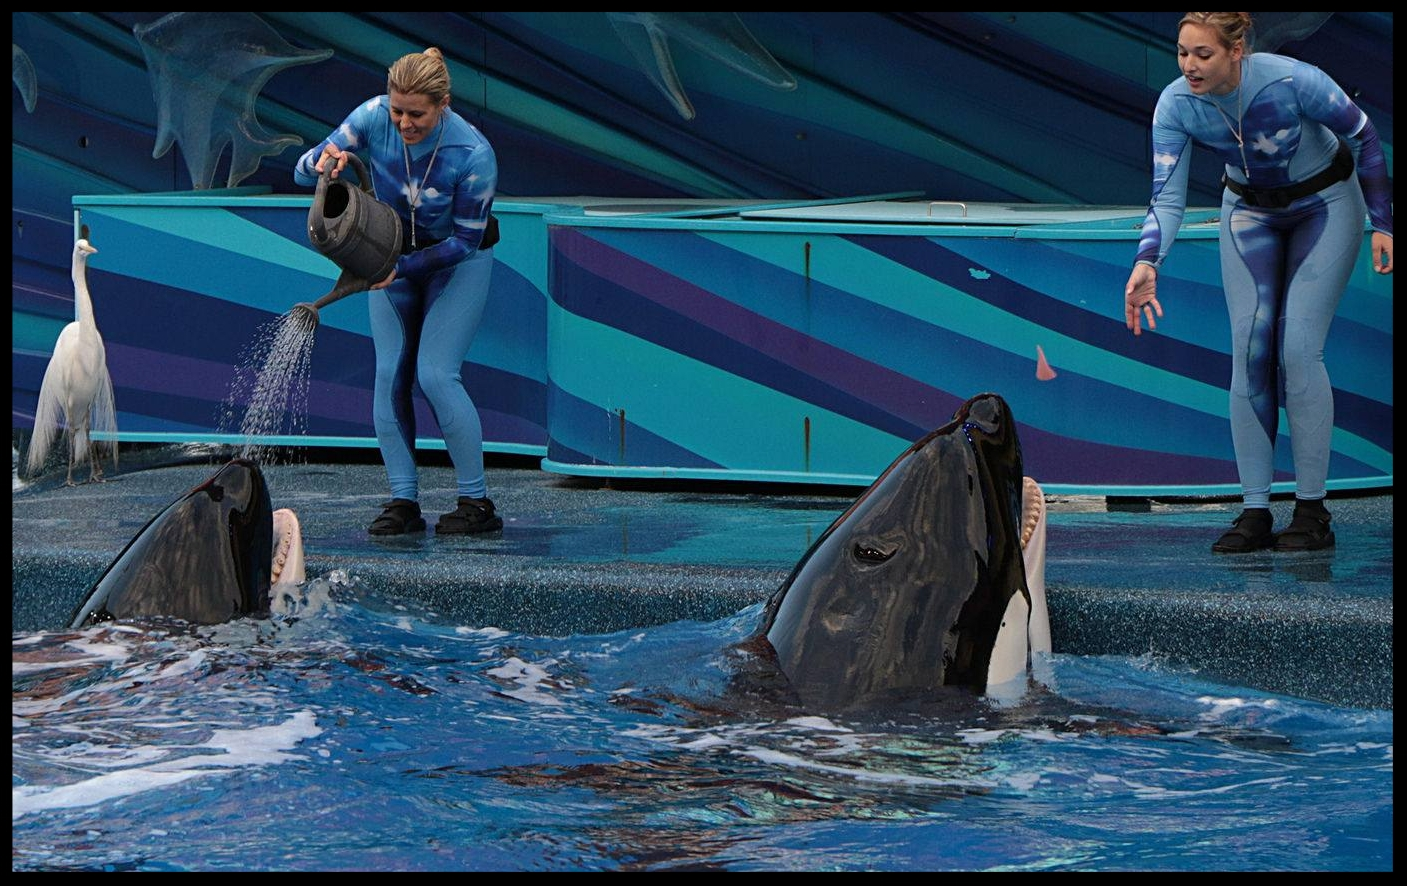 Orcas at SeaWorld Orlando receiving different types of reinforcement: the whale on the left is getting a tactile reinforcer in the form of a pouring watering can, whereas the whale on the right is being tossed a chunk of jello as an edible reinforcer.  Photo Credit: M. Hummel-Uzzi